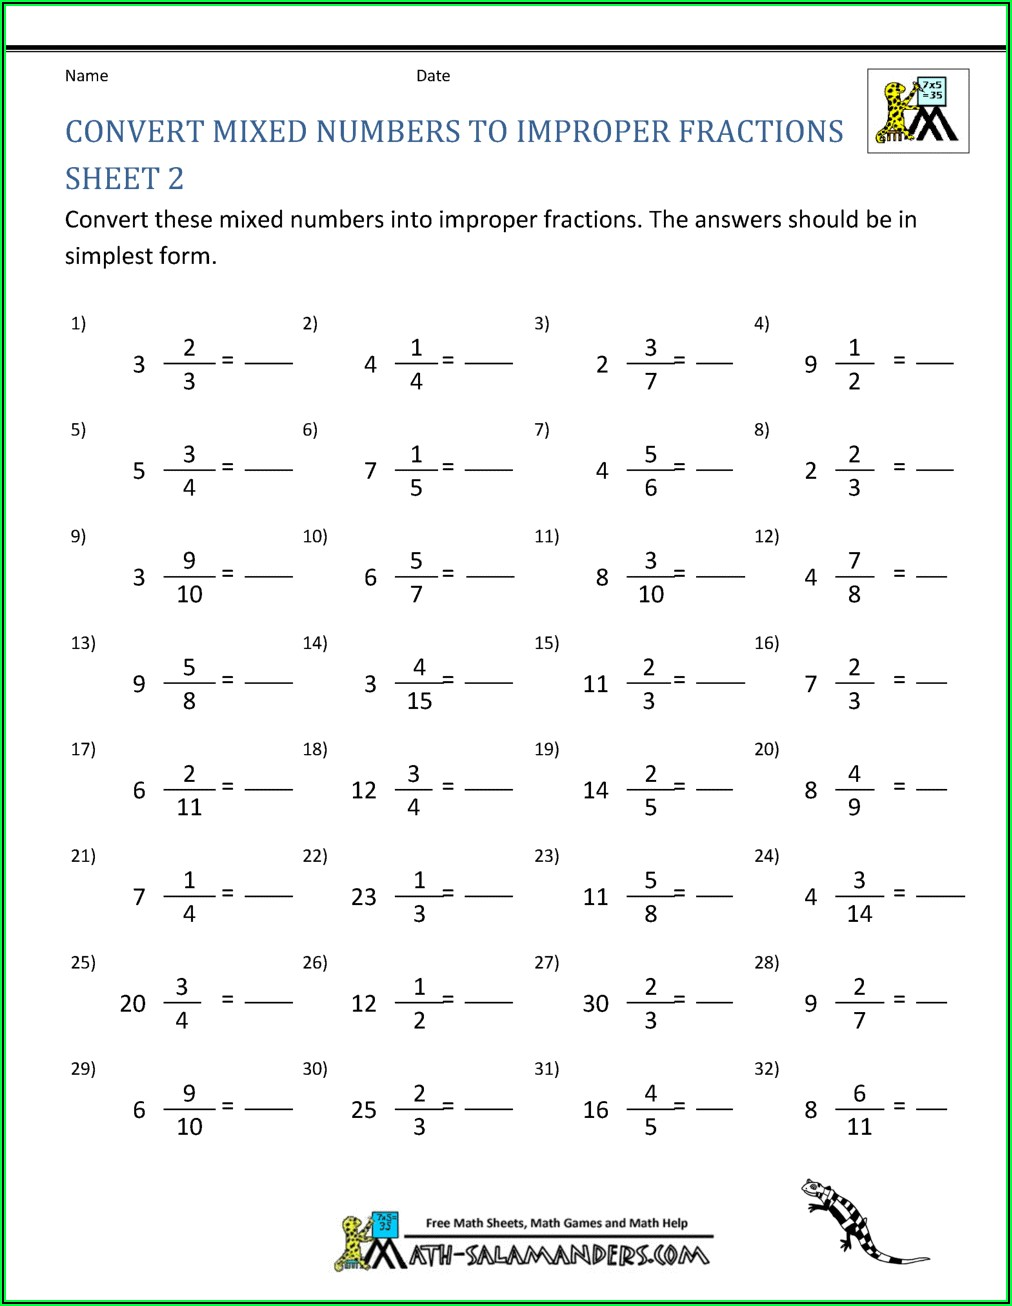 Convert Improper Fractions To Mixed Numbers Worksheet Pdf